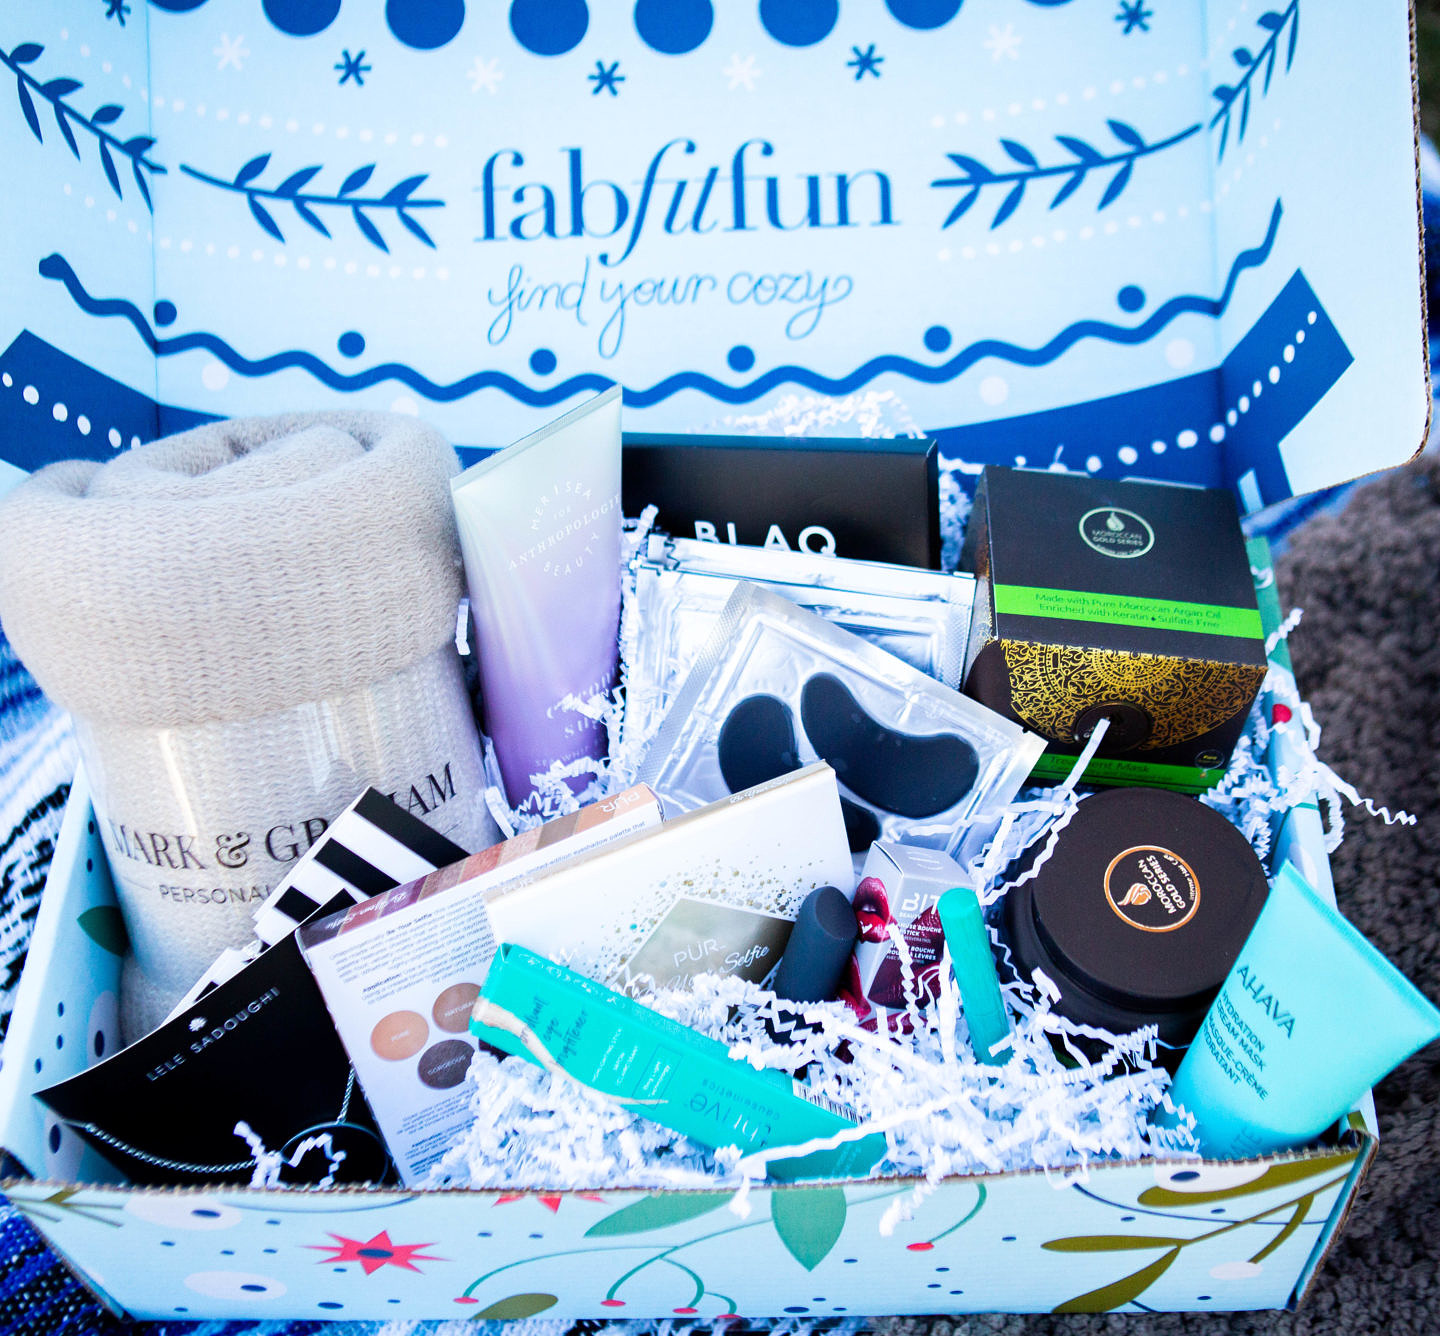 Bookmark this post ASAP if you have been wondering about the FabFitFun box! Orange County Blogger Debbie Savage is sharing why the FabFitFun Winter Box is her favorite delivery this season. See why here!